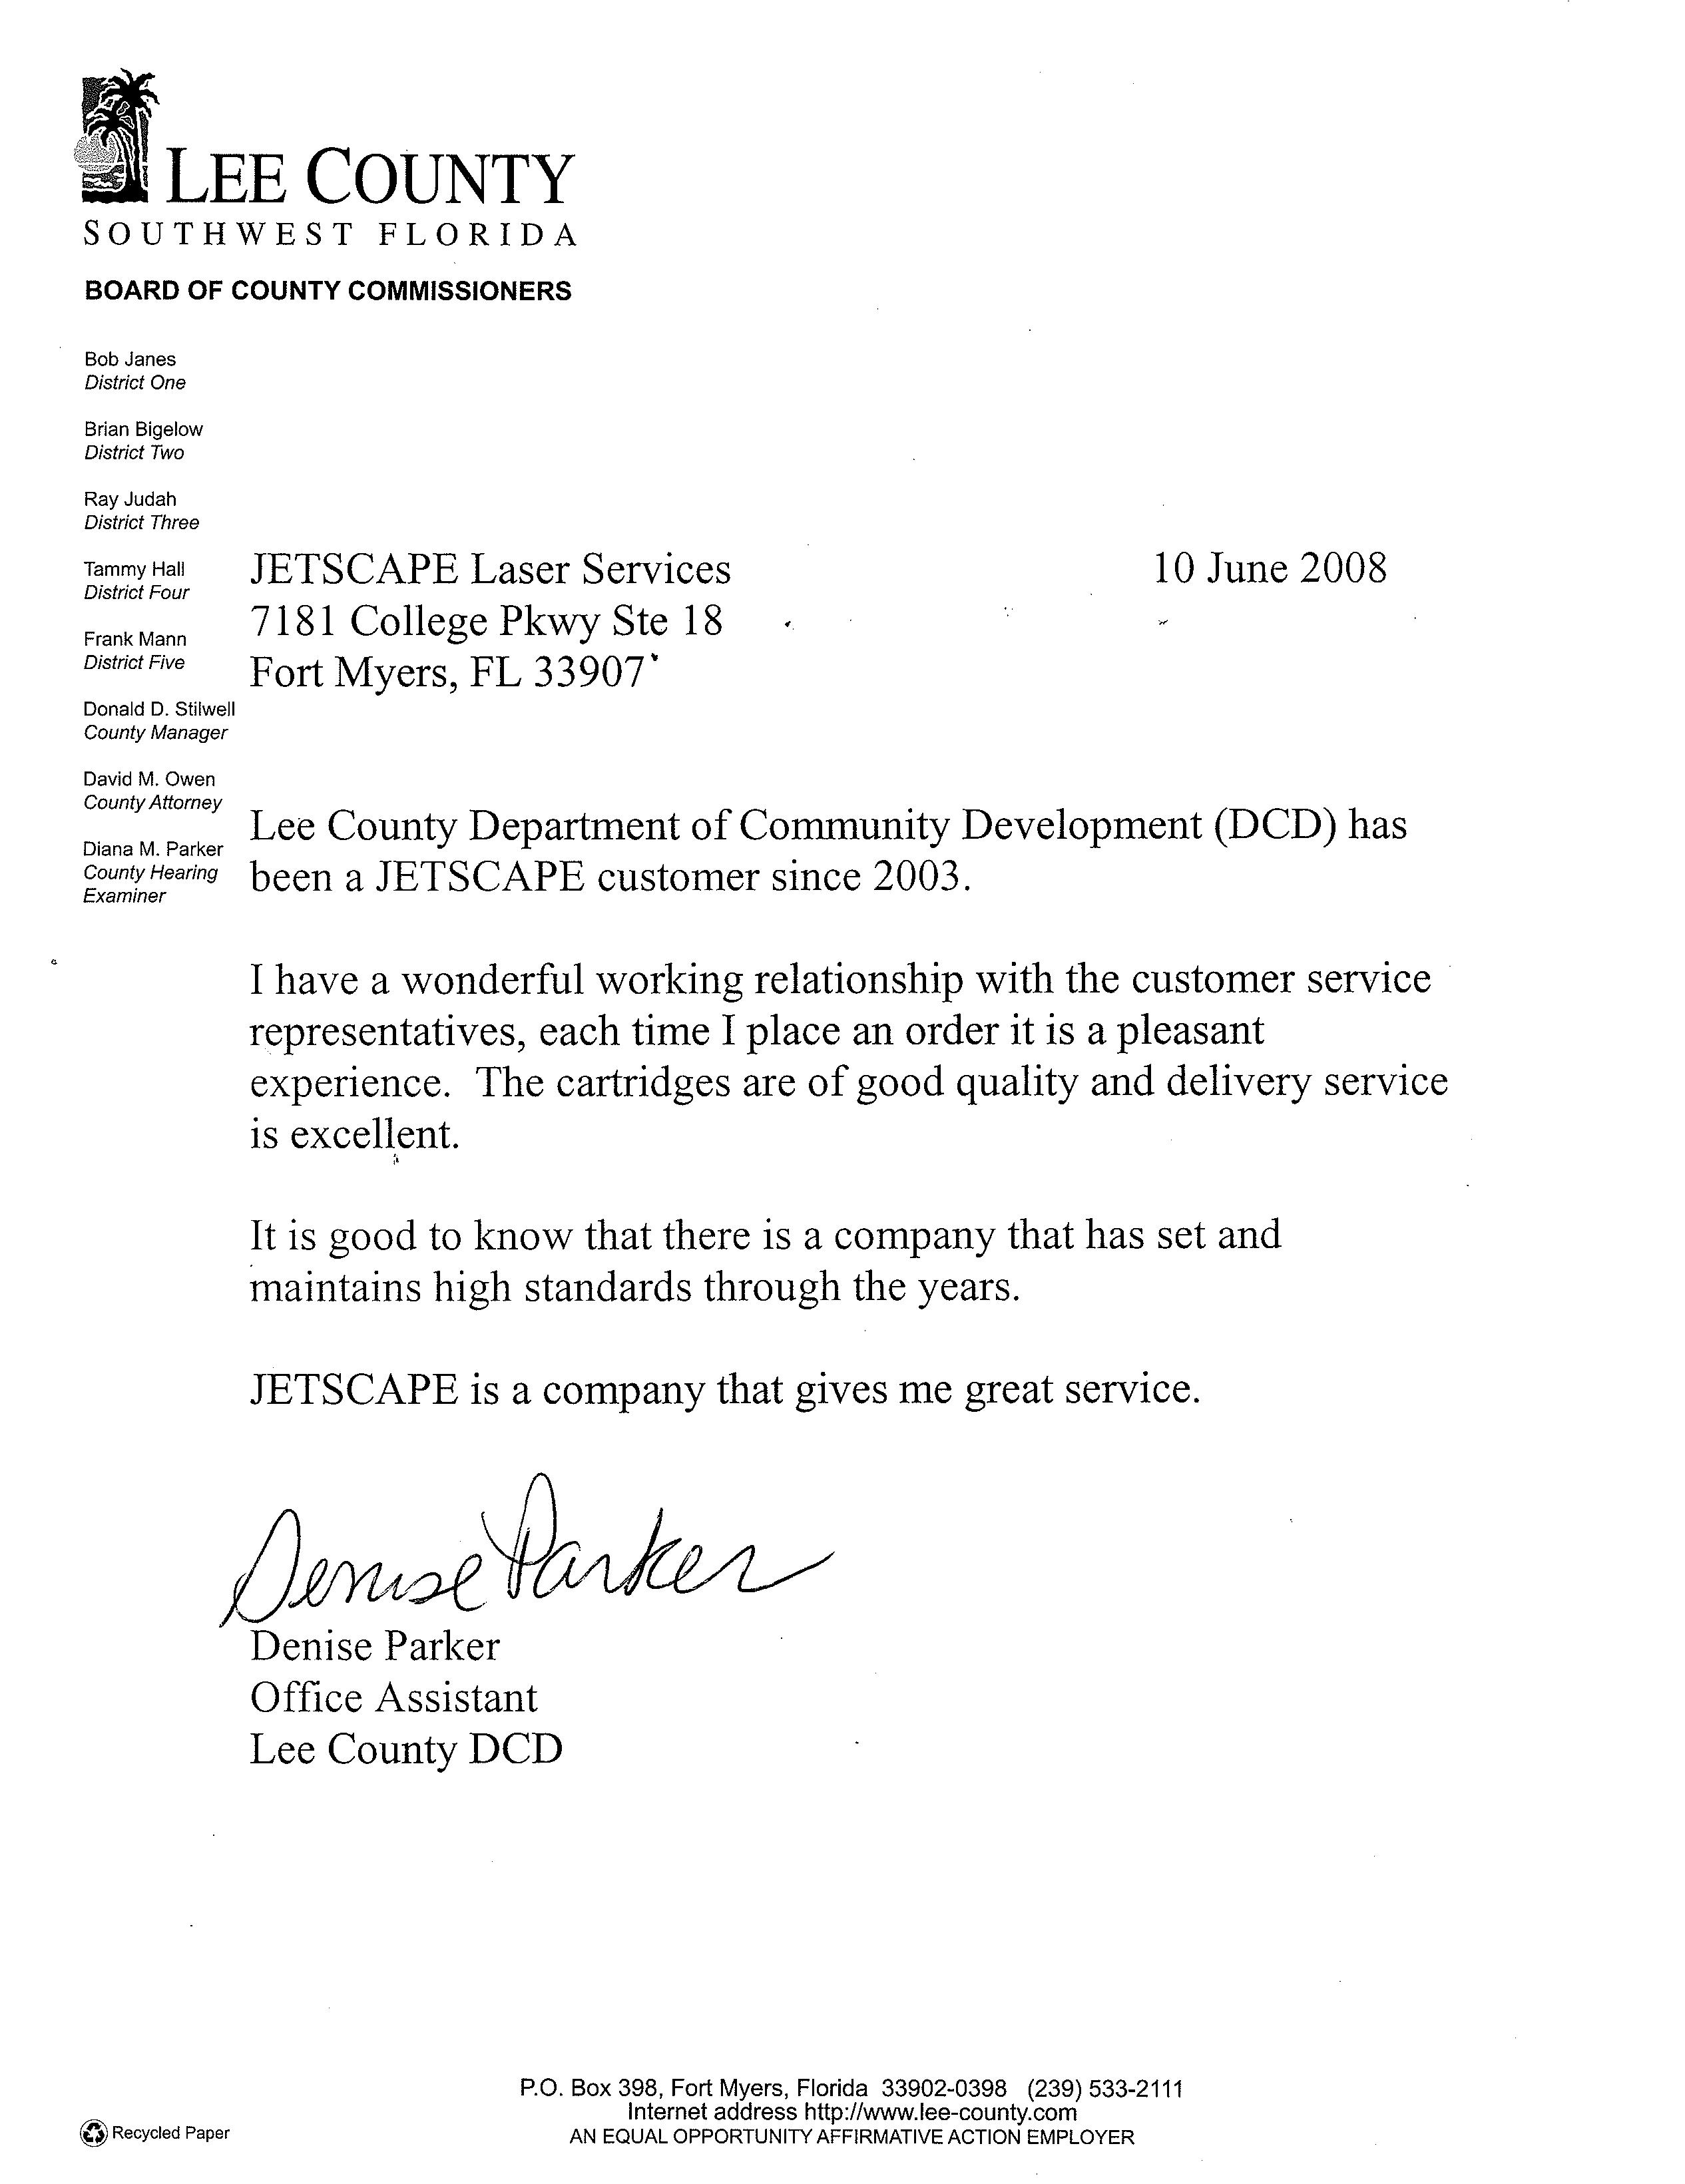 Dept of Community Dev Testimonial